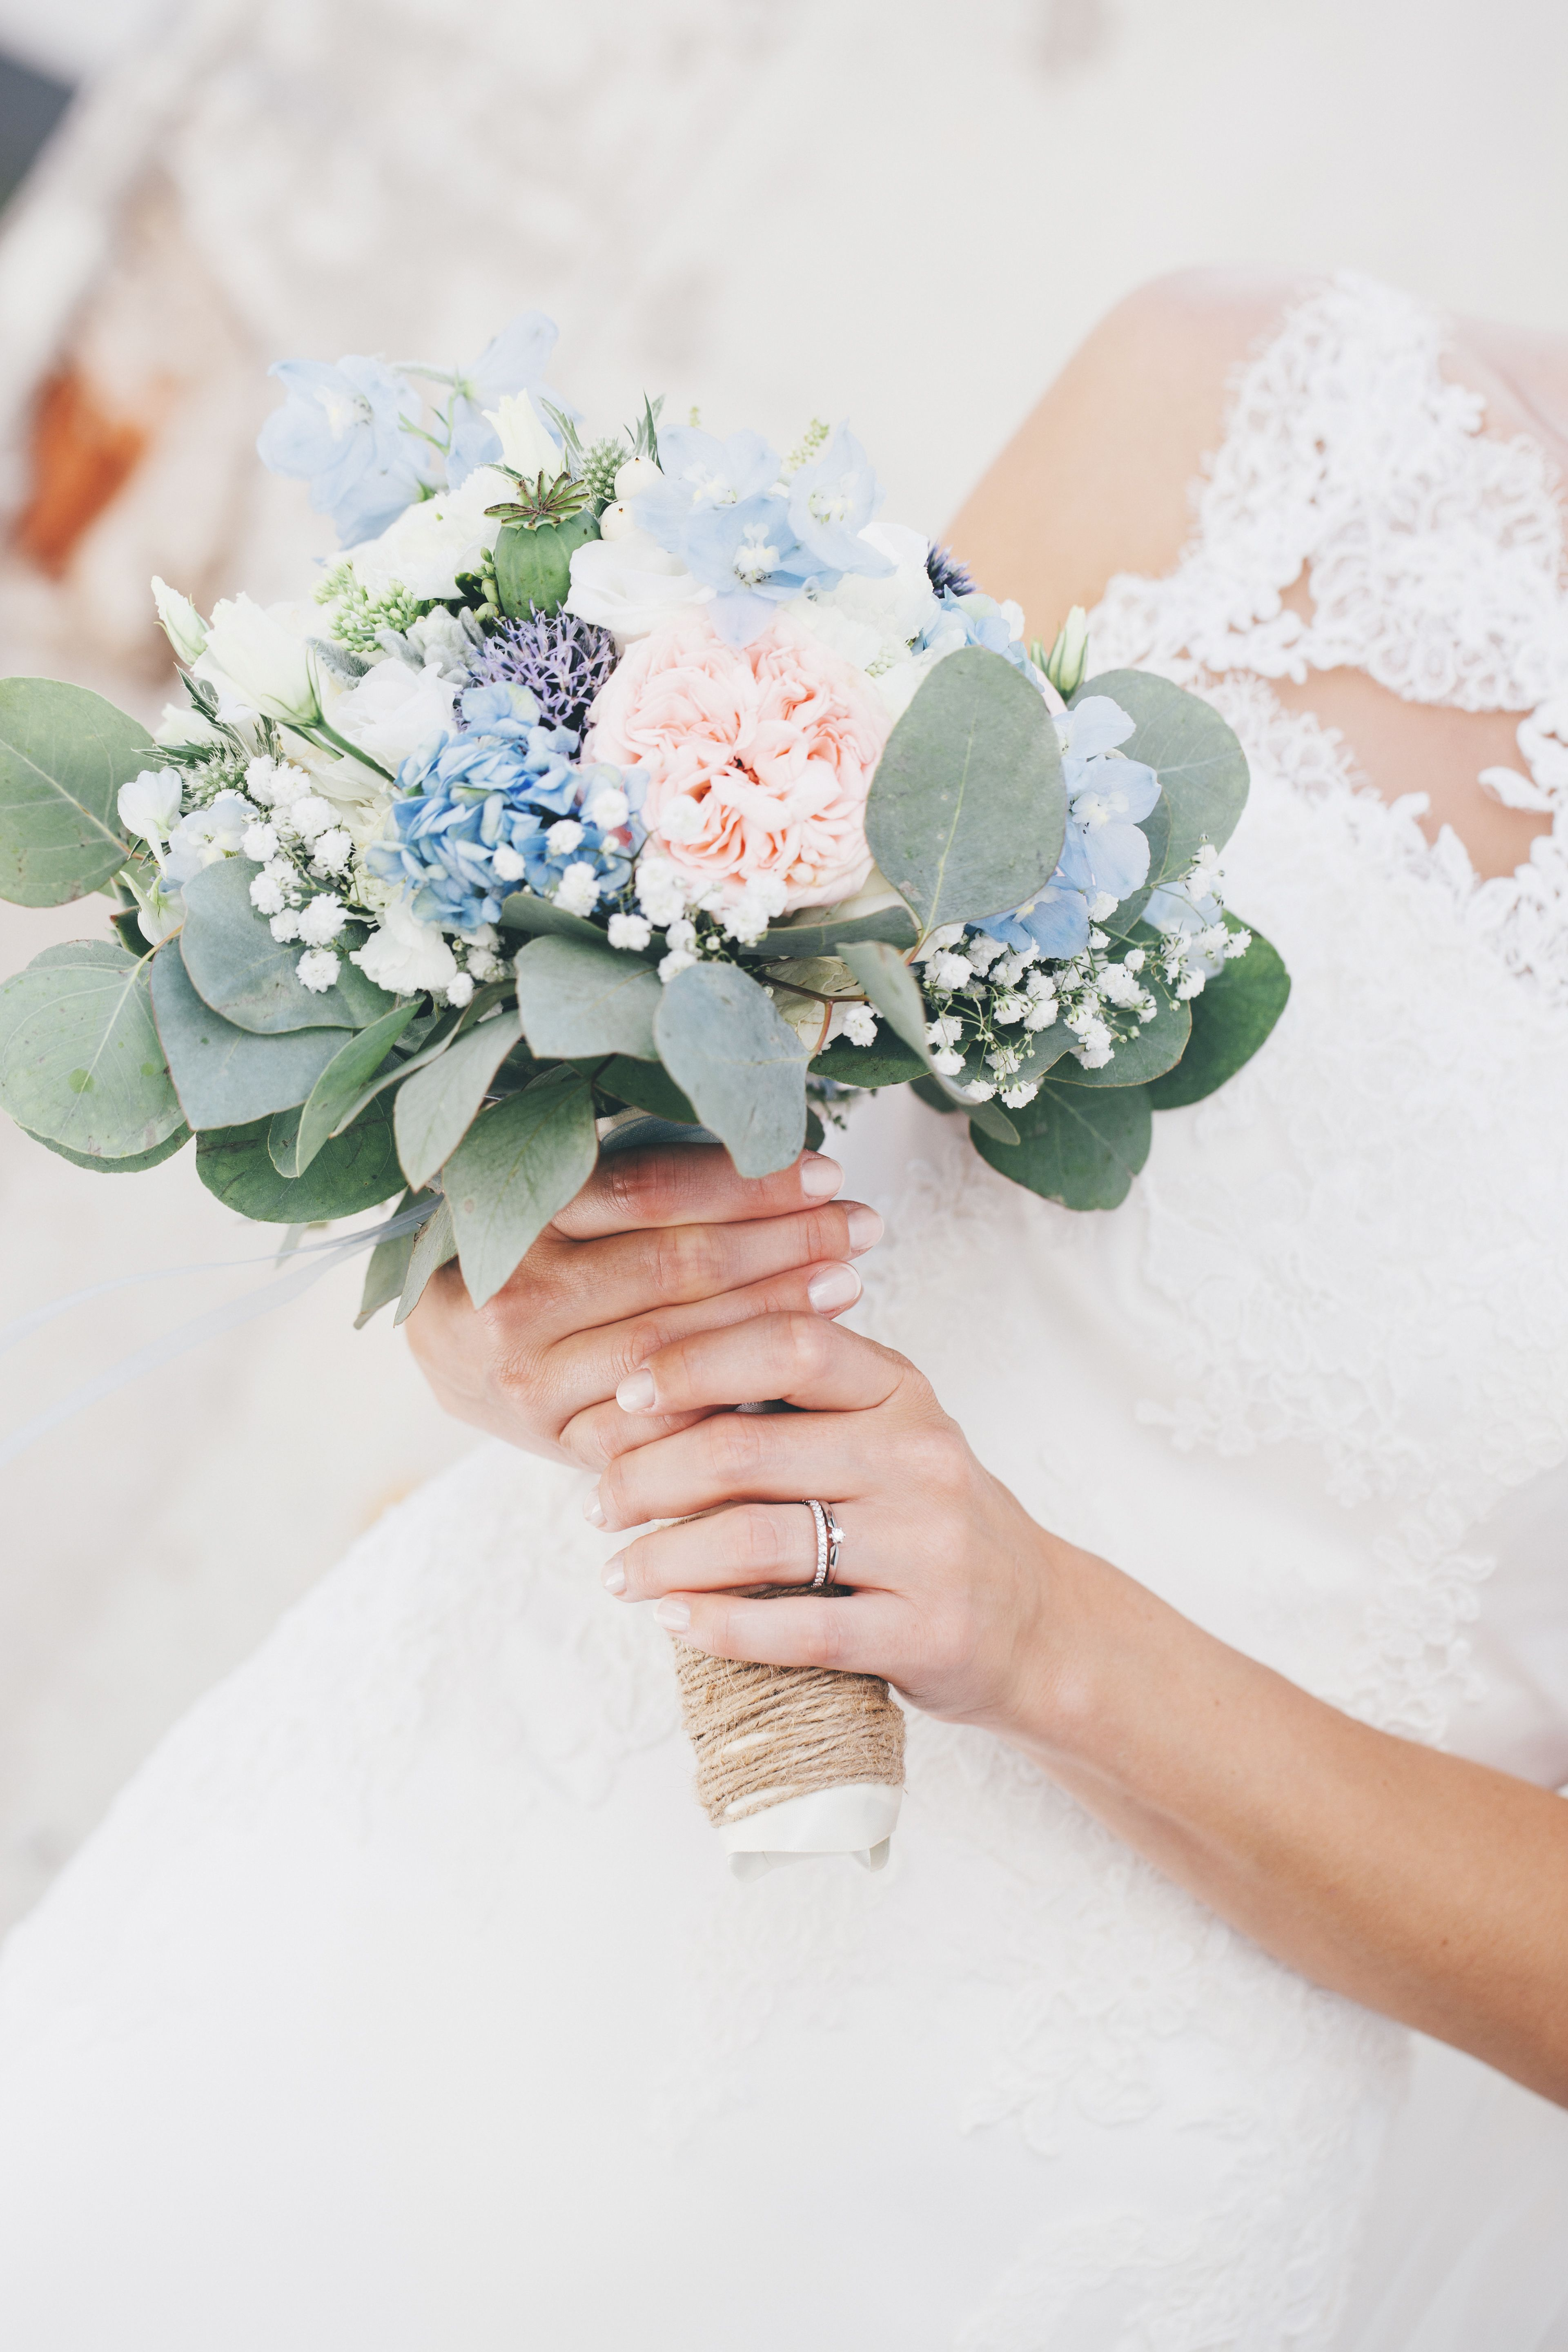 ANNA&LISA pure und emotionale Fotografie  Kooperation mit Art&Flower Braunschweig #wedding #annaundlisa #weddingflowers #brautstrauß #pastell #blau #vintage #fineart #flowerbouquetwedding